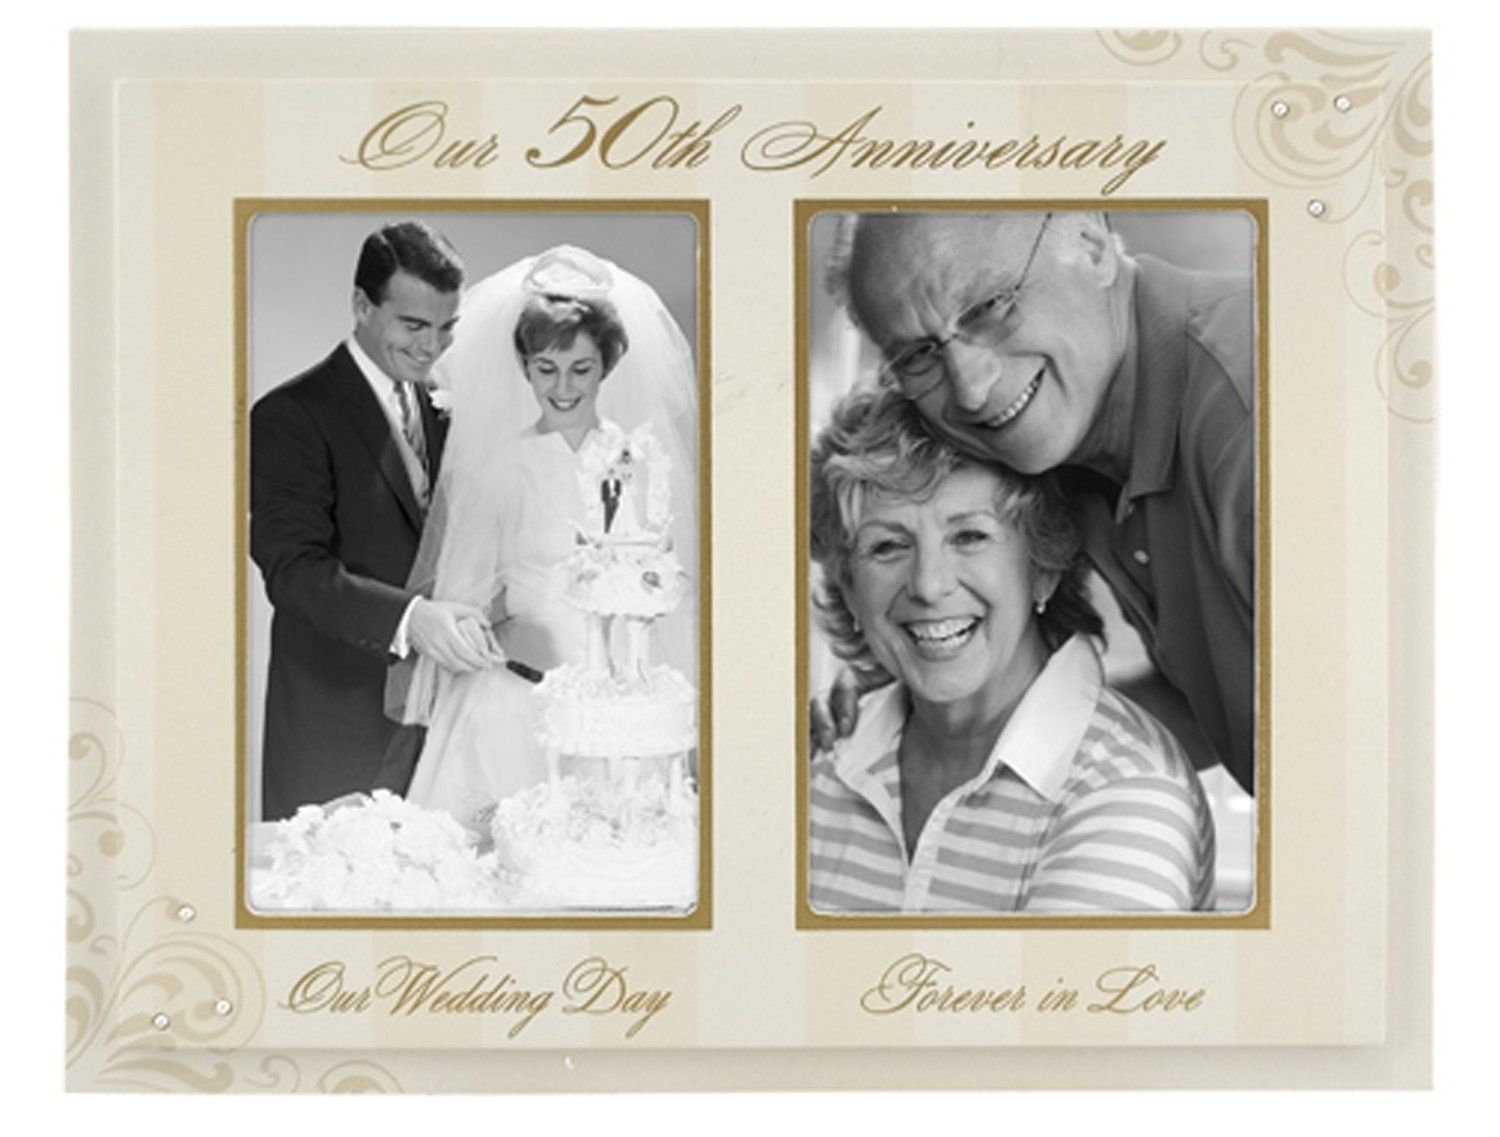 Fiftieth Wedding Anniversary Gifts: 50th Wedding Anniversary Gift Ideas For